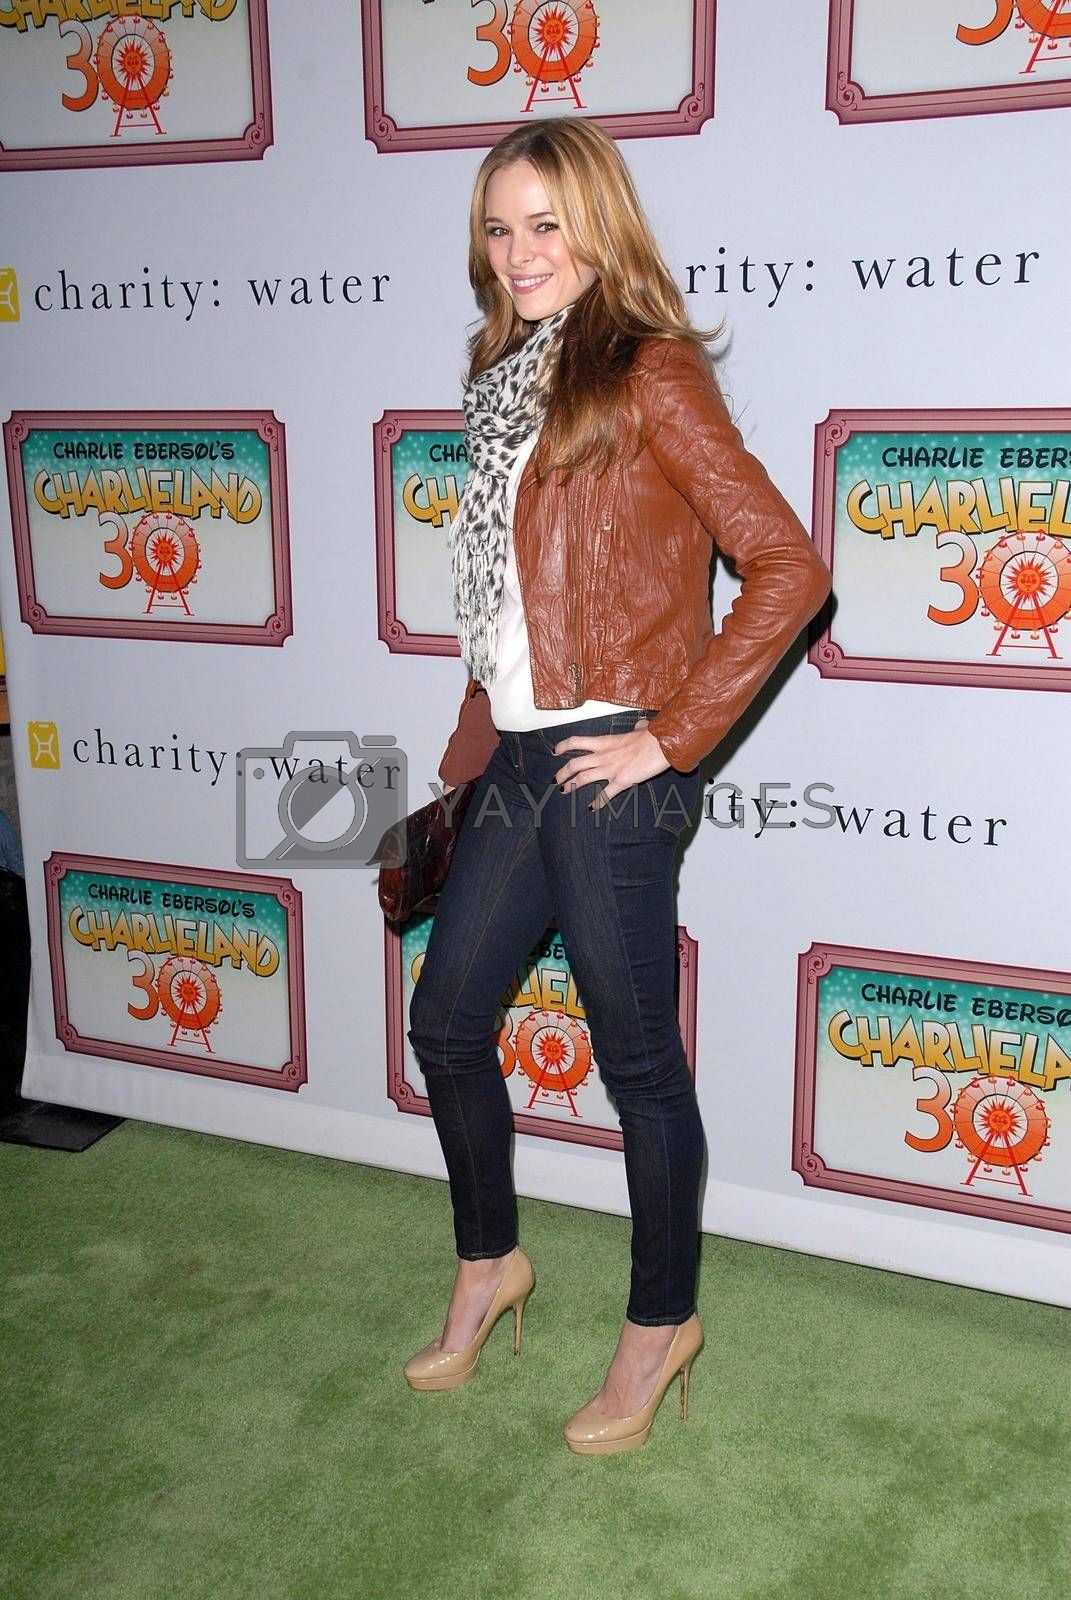 Danielle Panabaker at Charlieland, celebrating Charlie Ebersol's 30th Birthday and benefitting Charity:Water, Private Location, Beverly Hills, CA 12-08-12/ImageCollect by ImageCollect